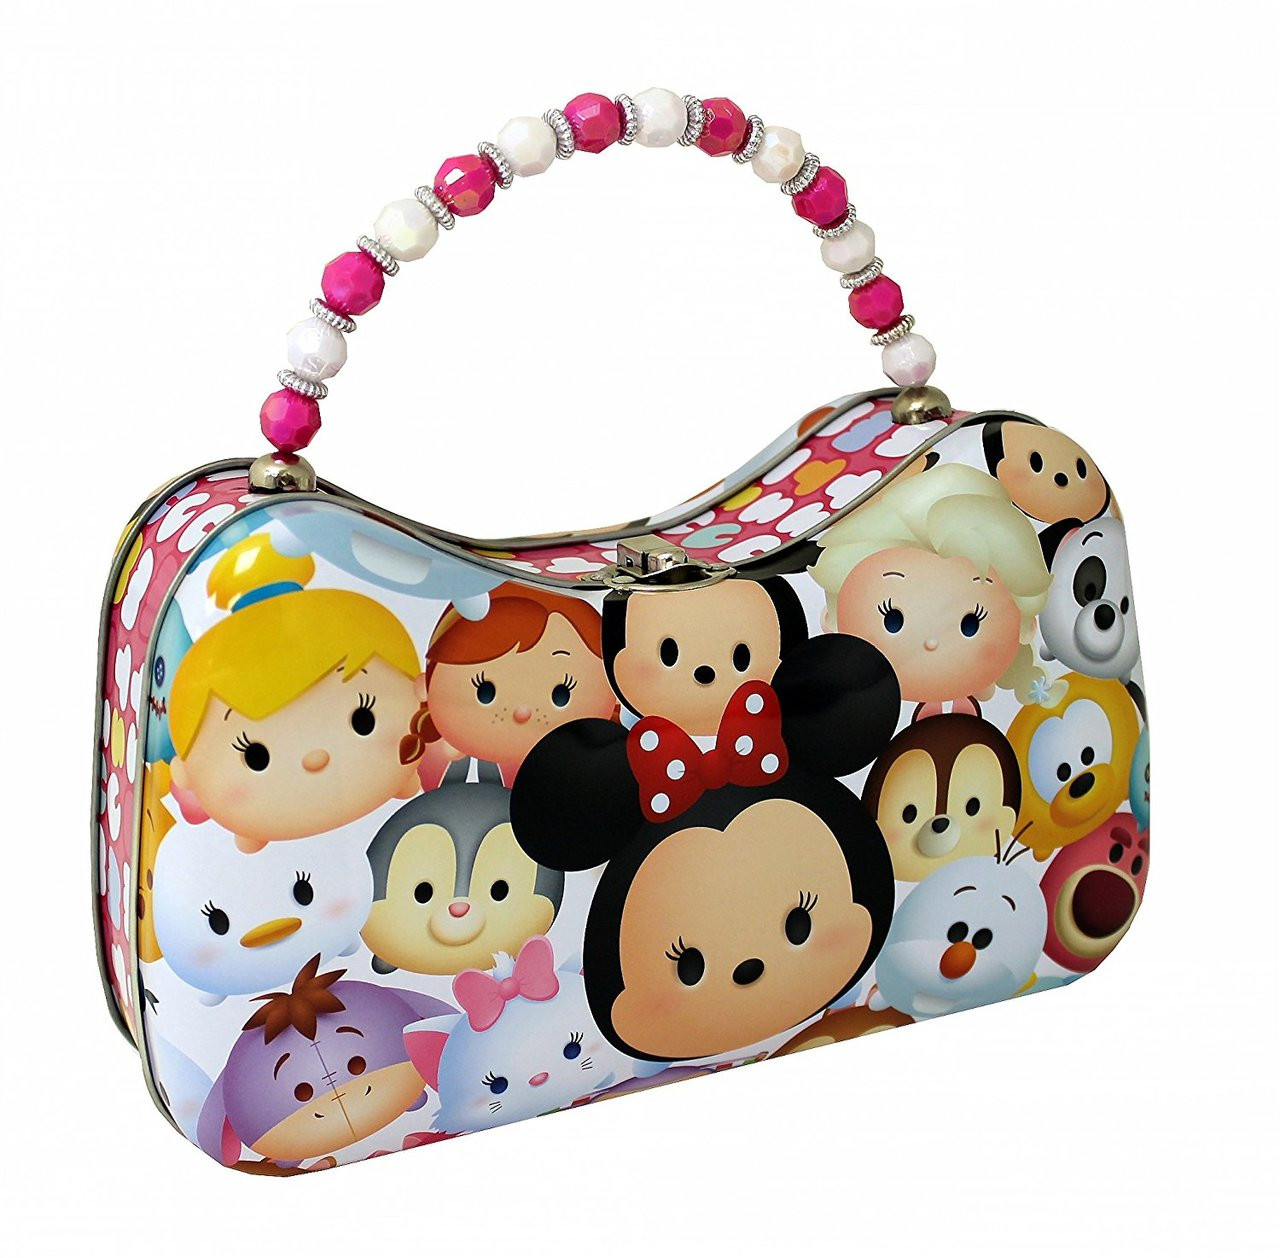 Tsum Tsum Tin Purse with Beaded Handle - Friends